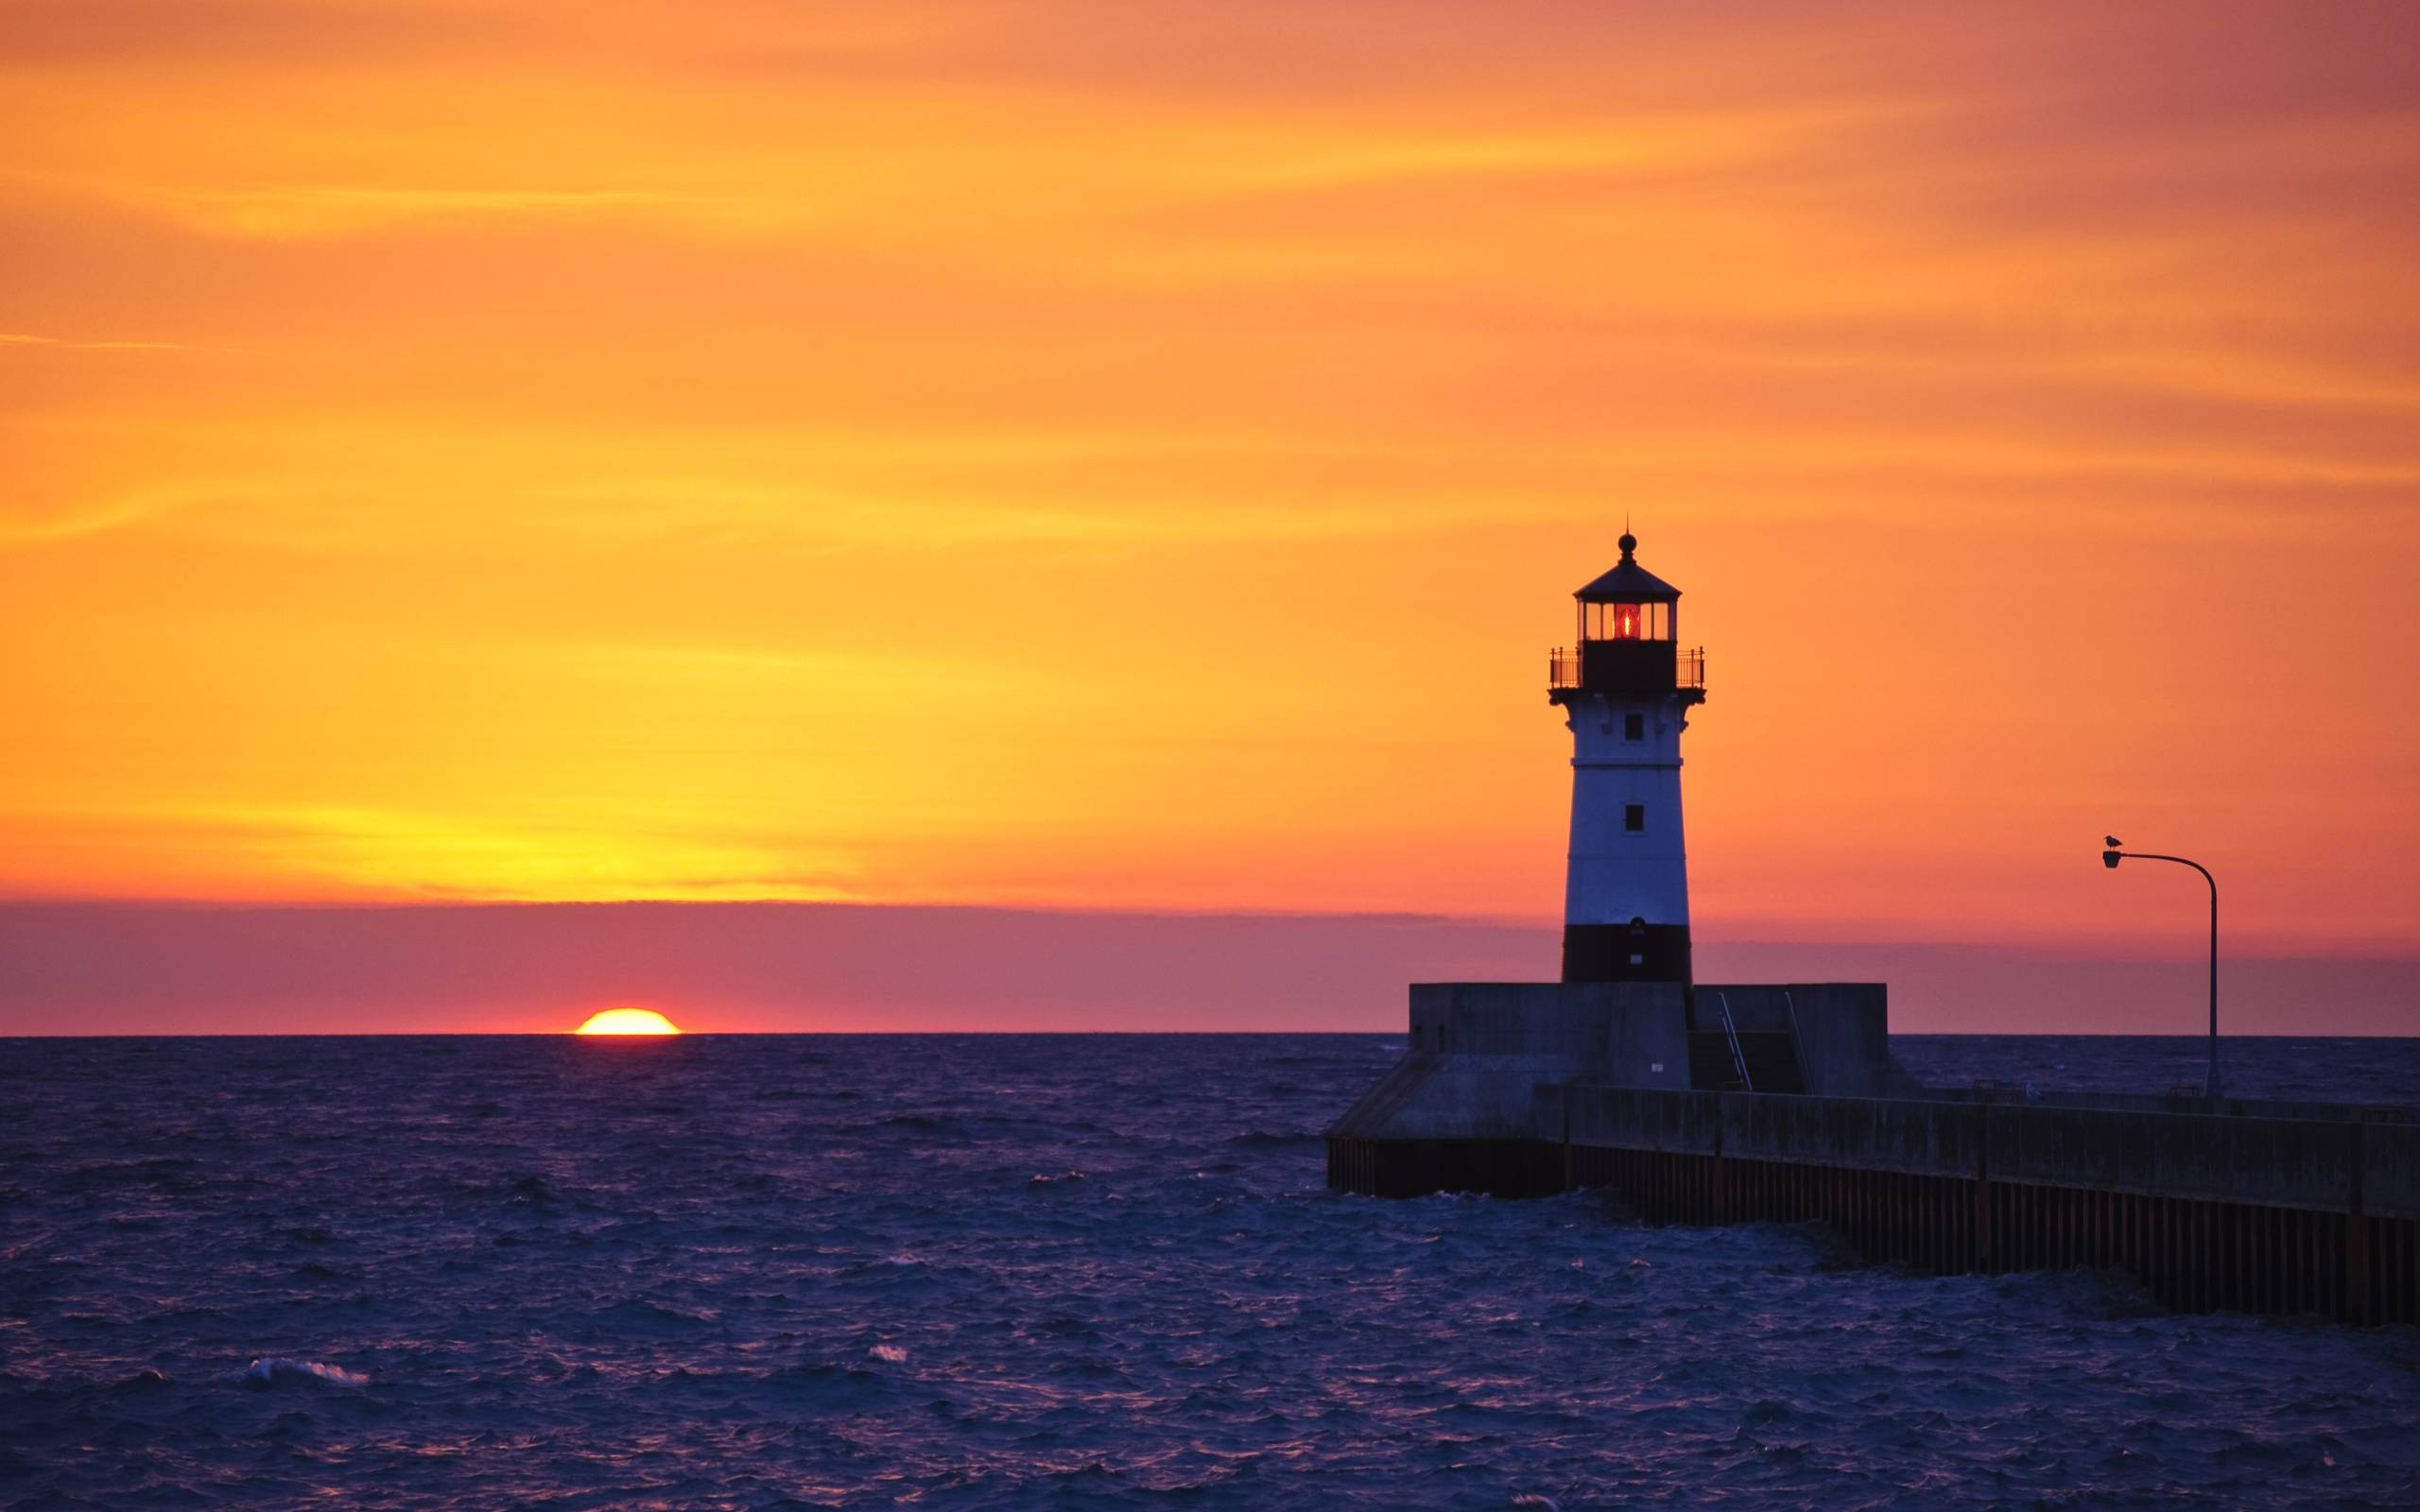 lighthouse in duluth minnesota desktop wallpapers free on latoro com